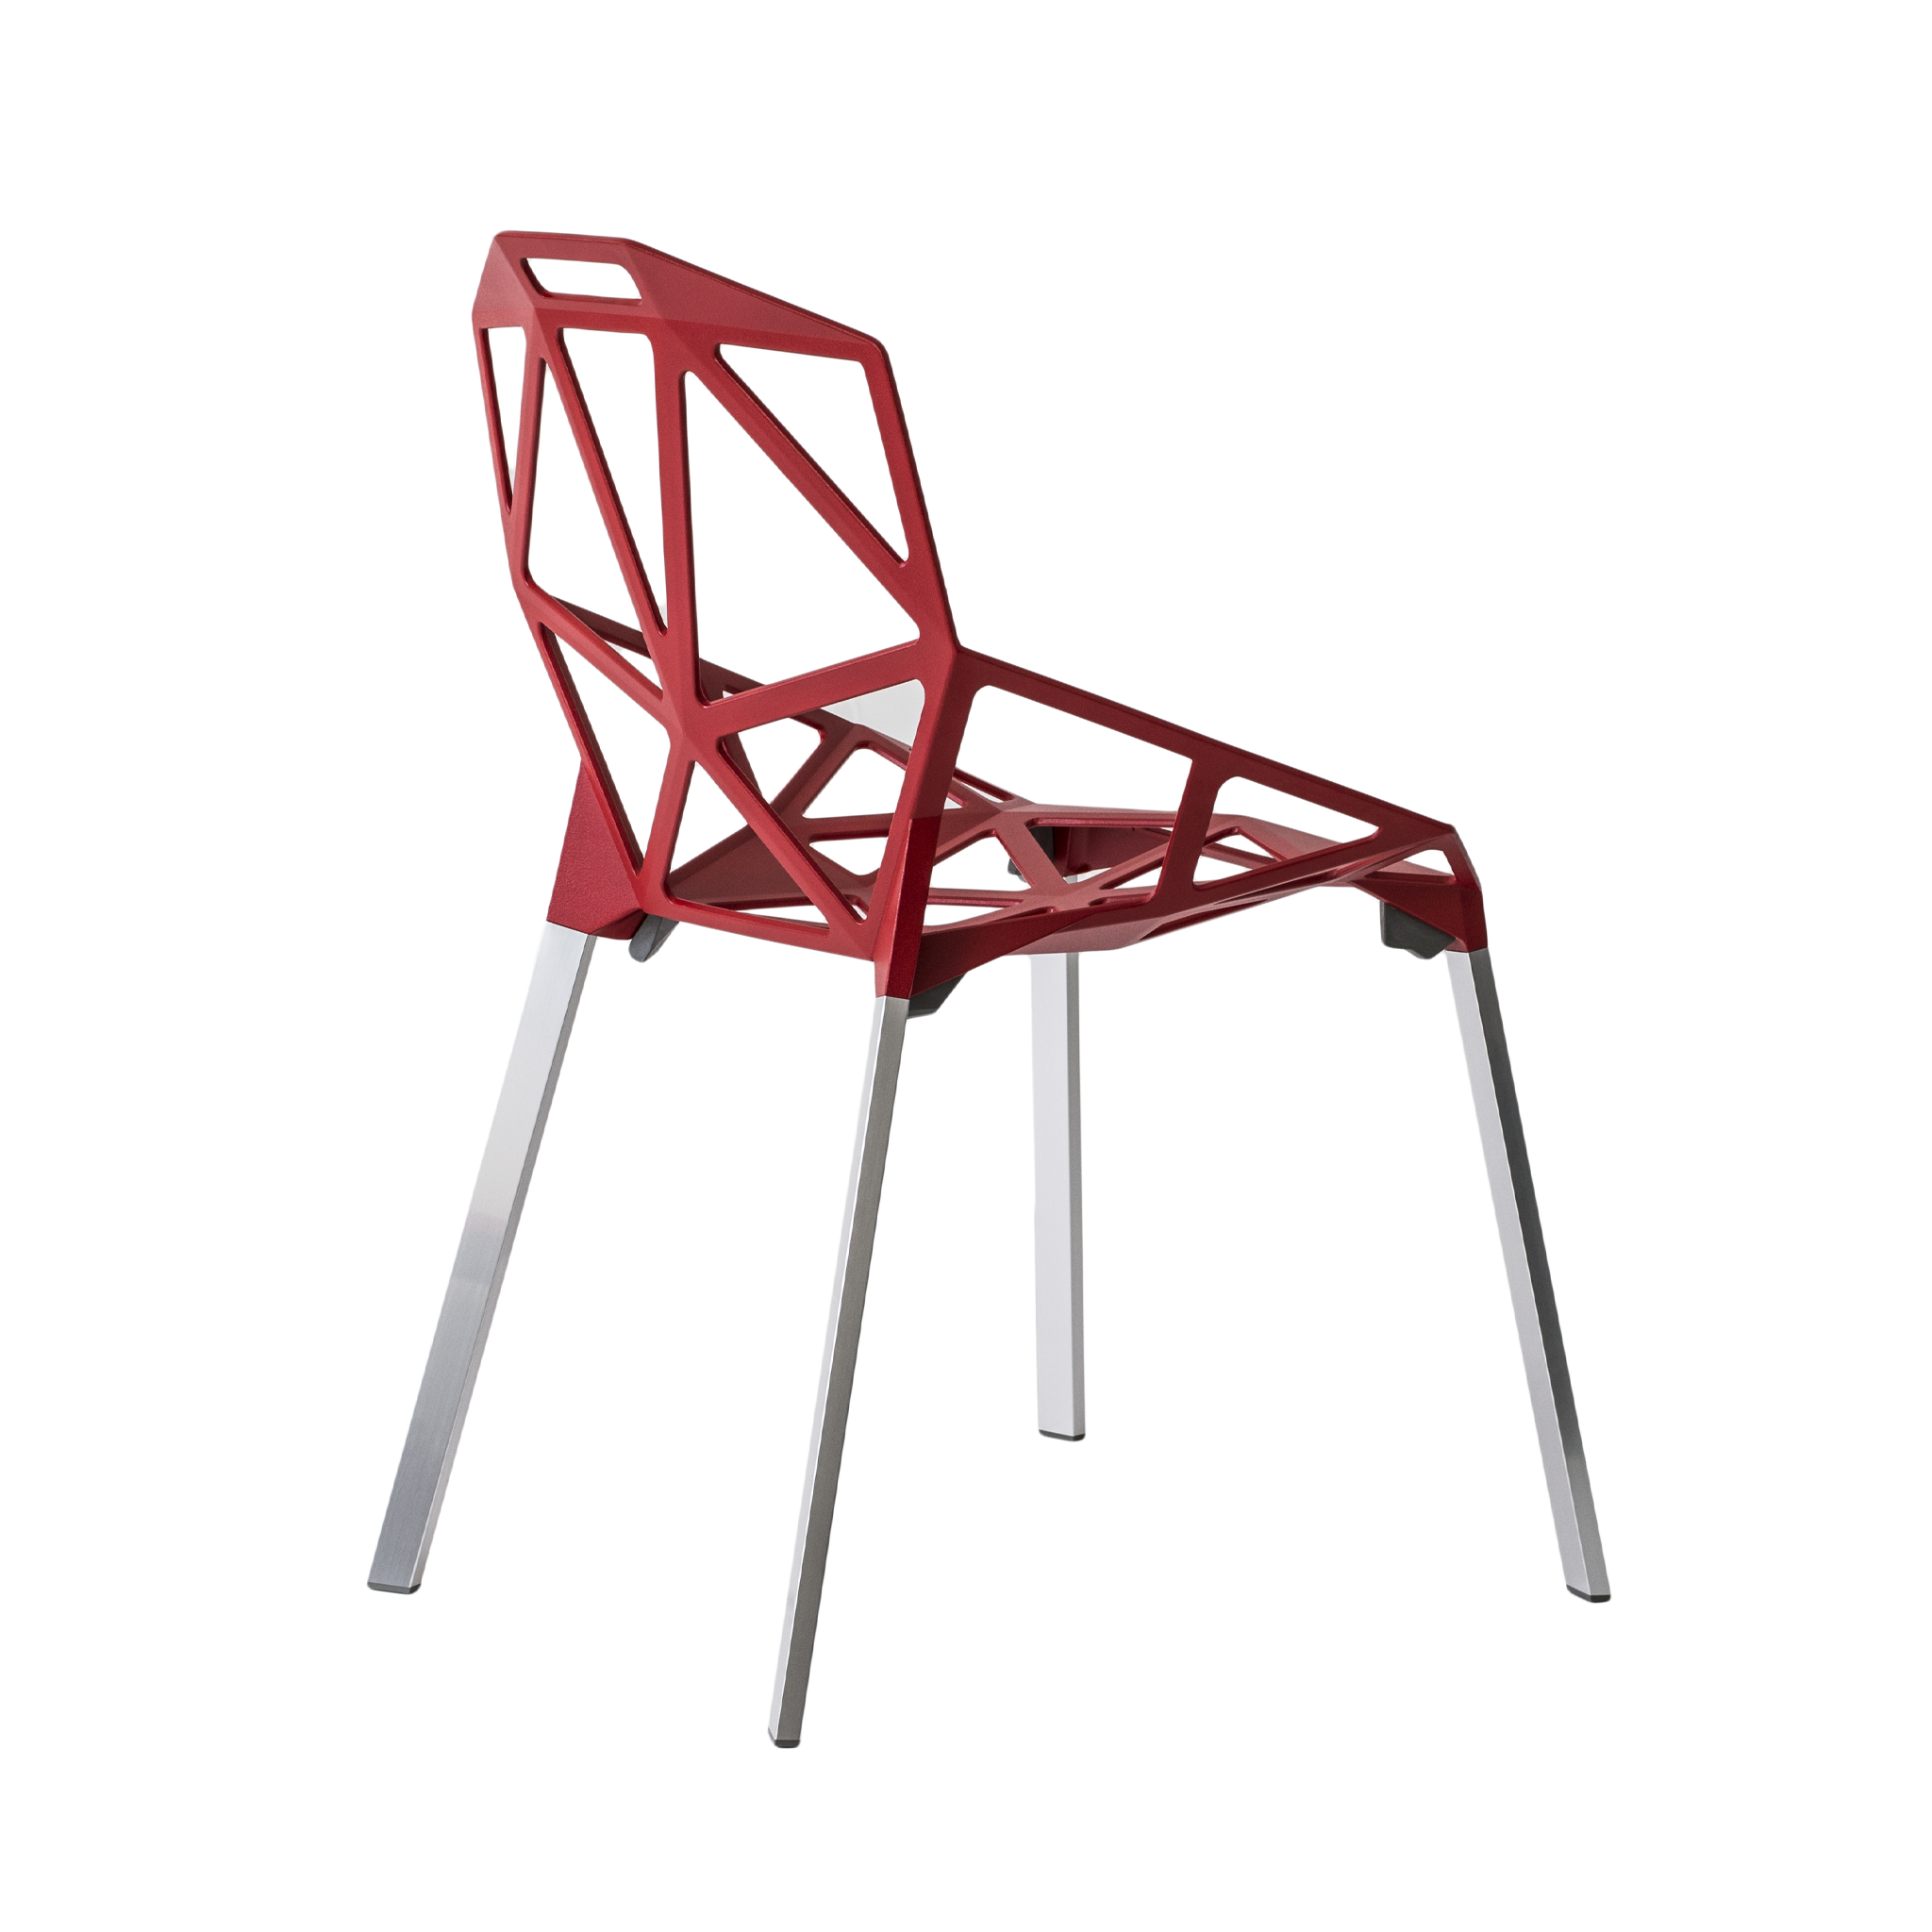 Chair One - Stacking Model by Magis